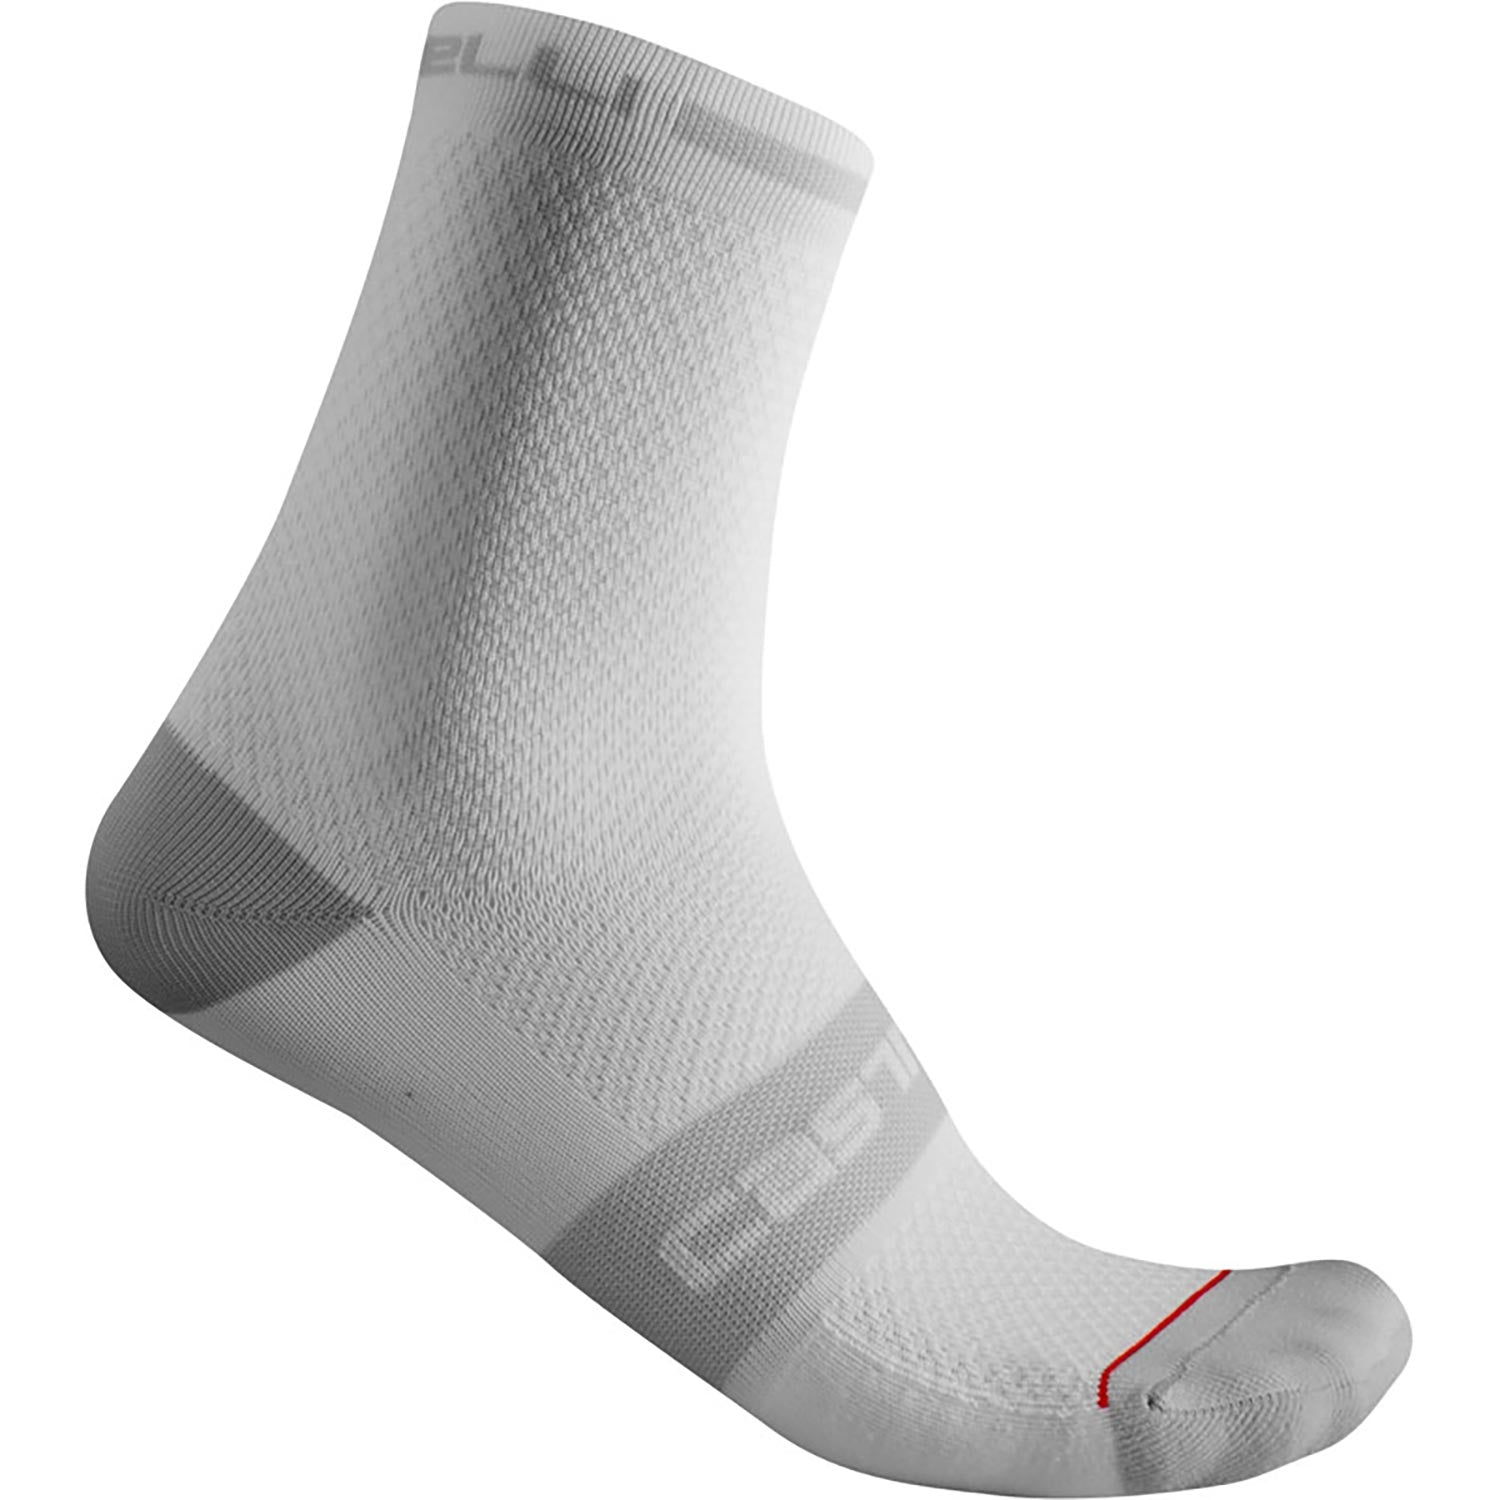 Castelli-Castelli Superleggera T 12 Socks-White-S/M-CS2103000109-saddleback-elite-performance-cycling